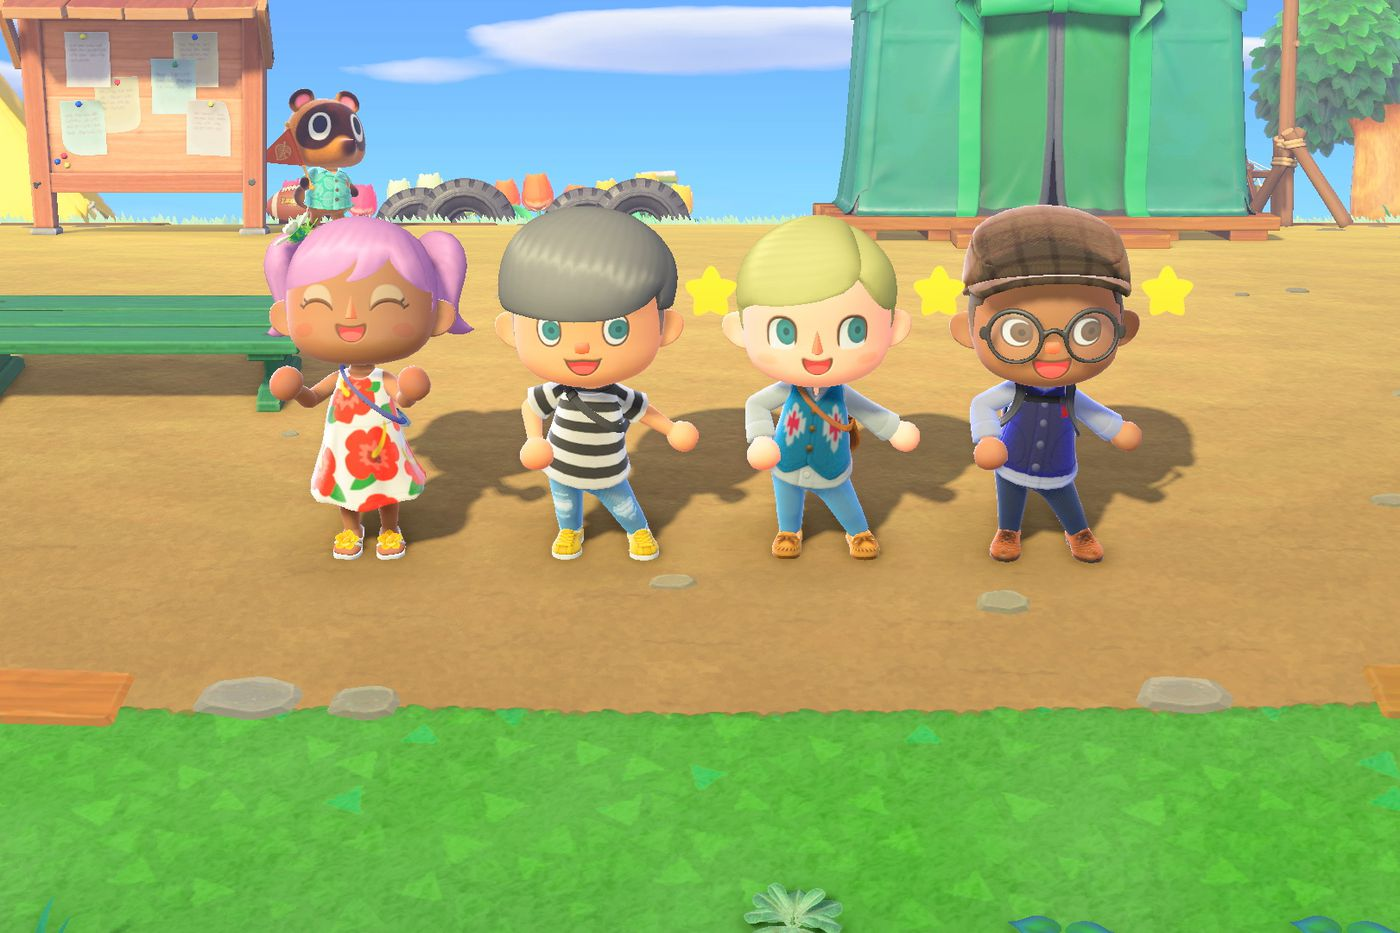 Animal Crossing New Horizons Review A Chill Life Sim That Puts You In Control The Verge